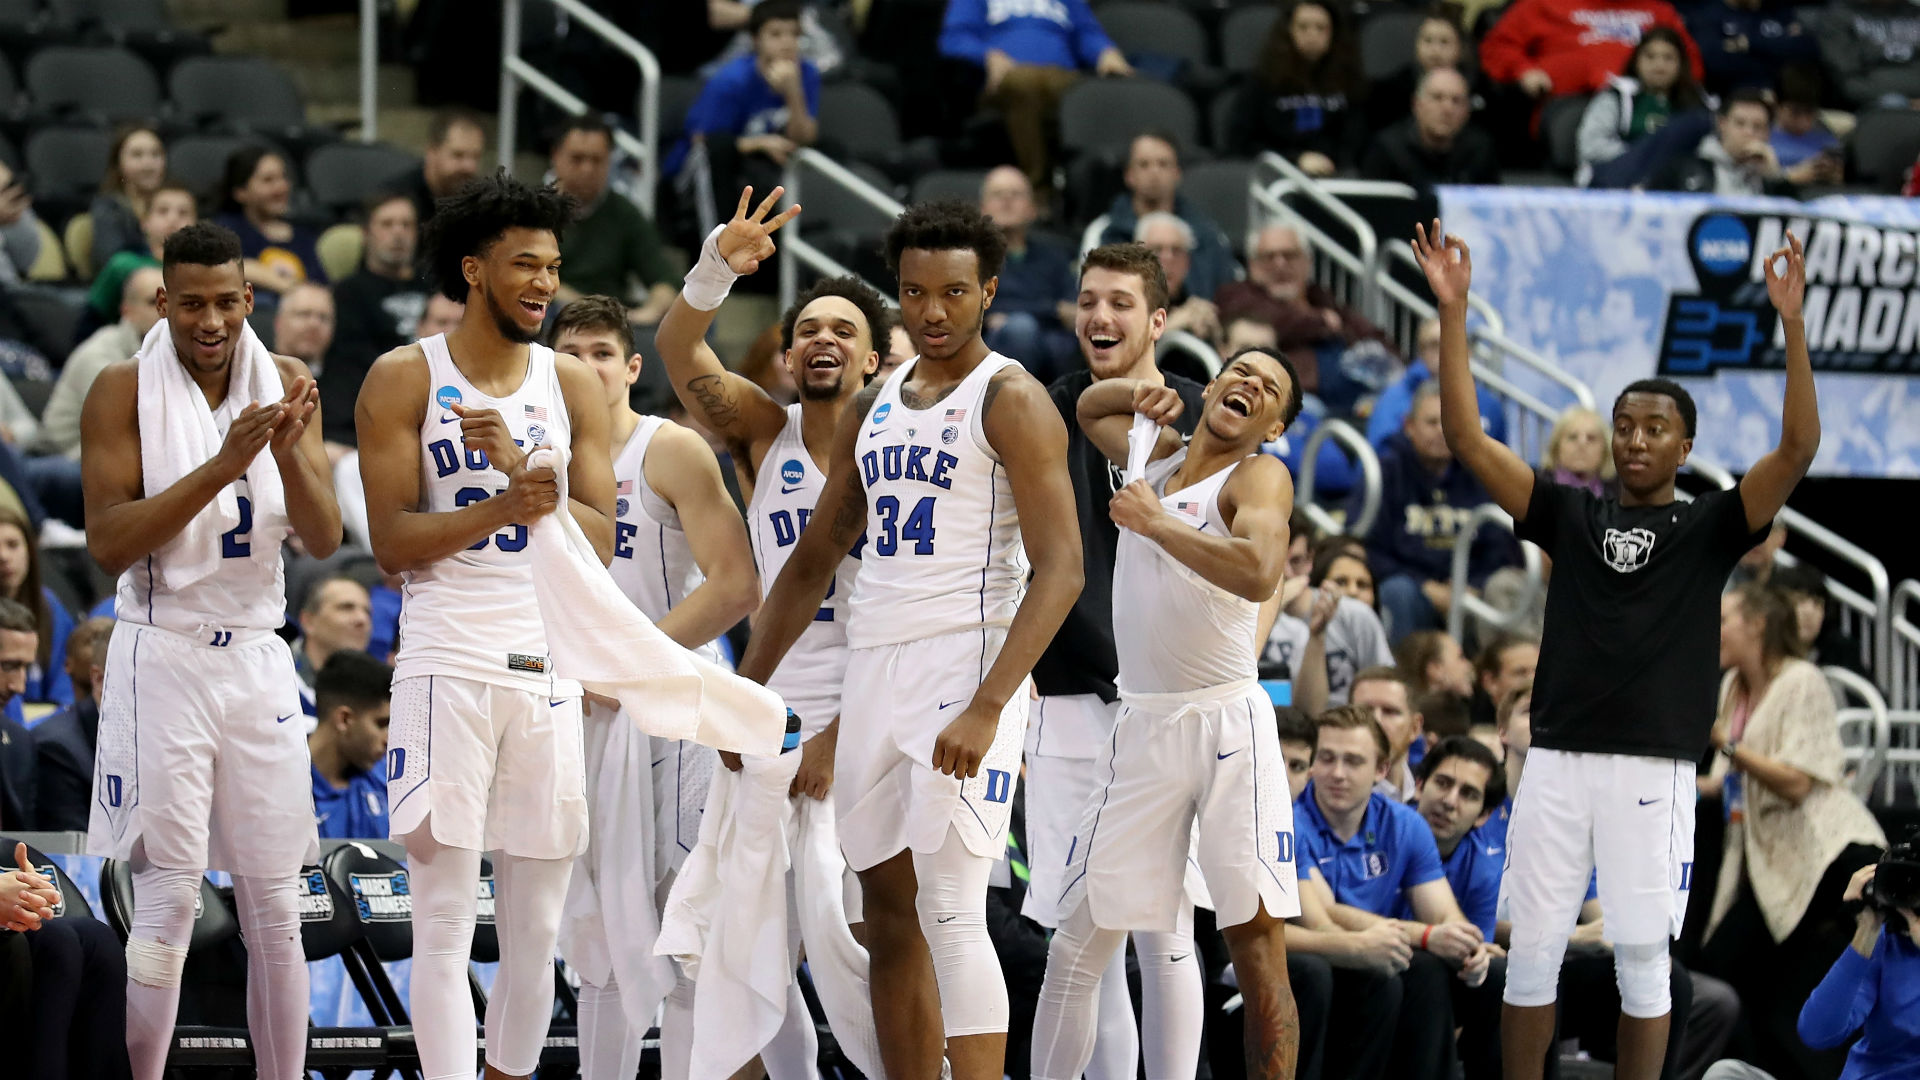 Watch Duke vs. Rhode Island online